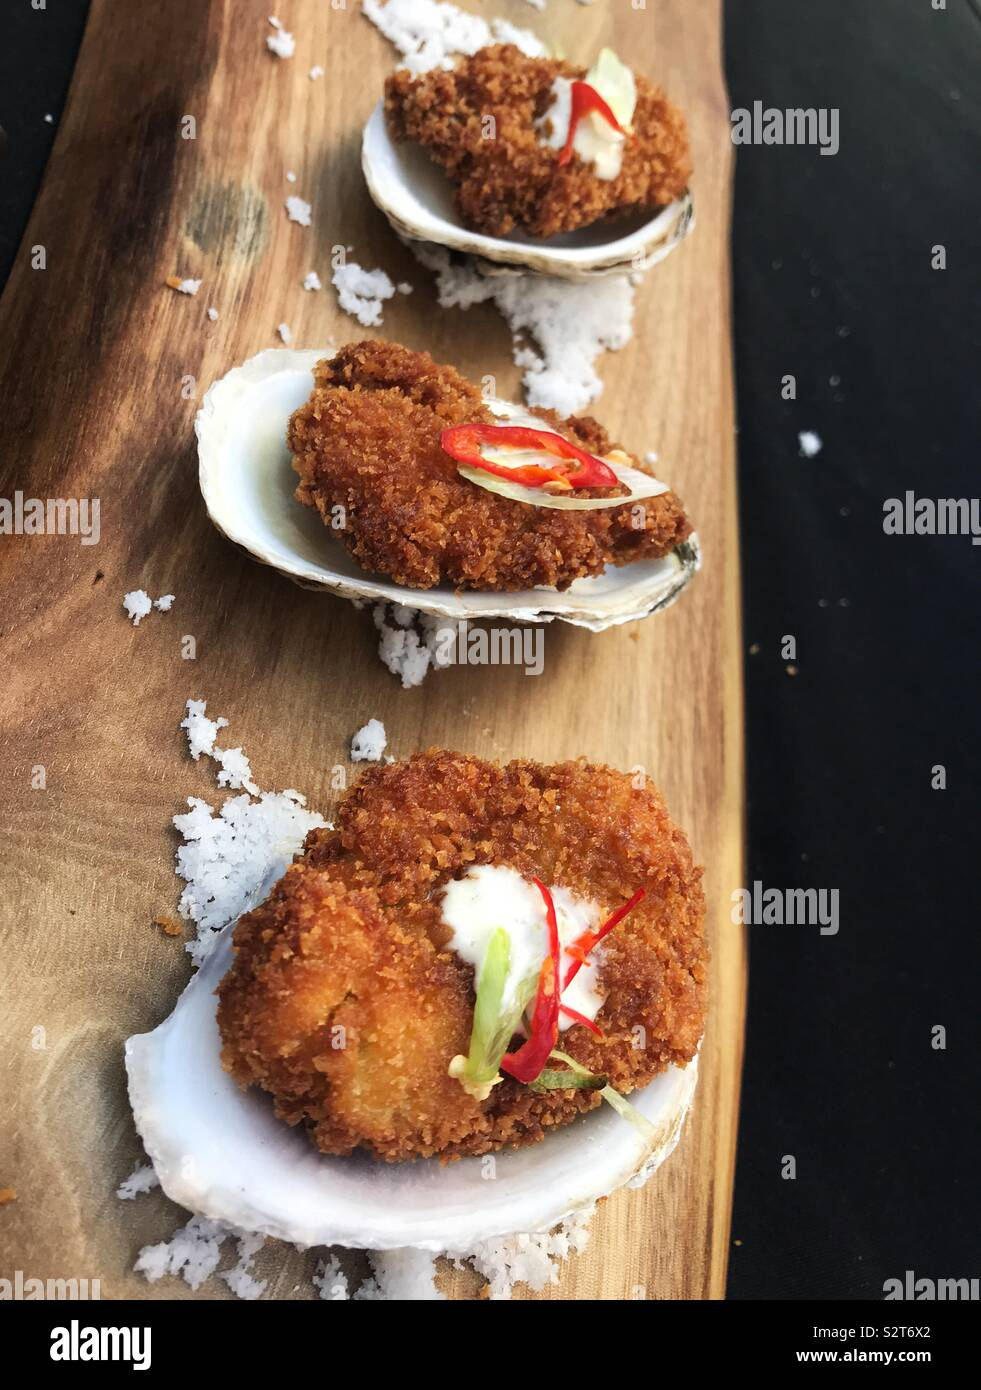 Fried oysters with aioli and jalapeño, served on the half-shell on a rustic wooden board, garnished with salt.  Elegant party food. - Stock Image